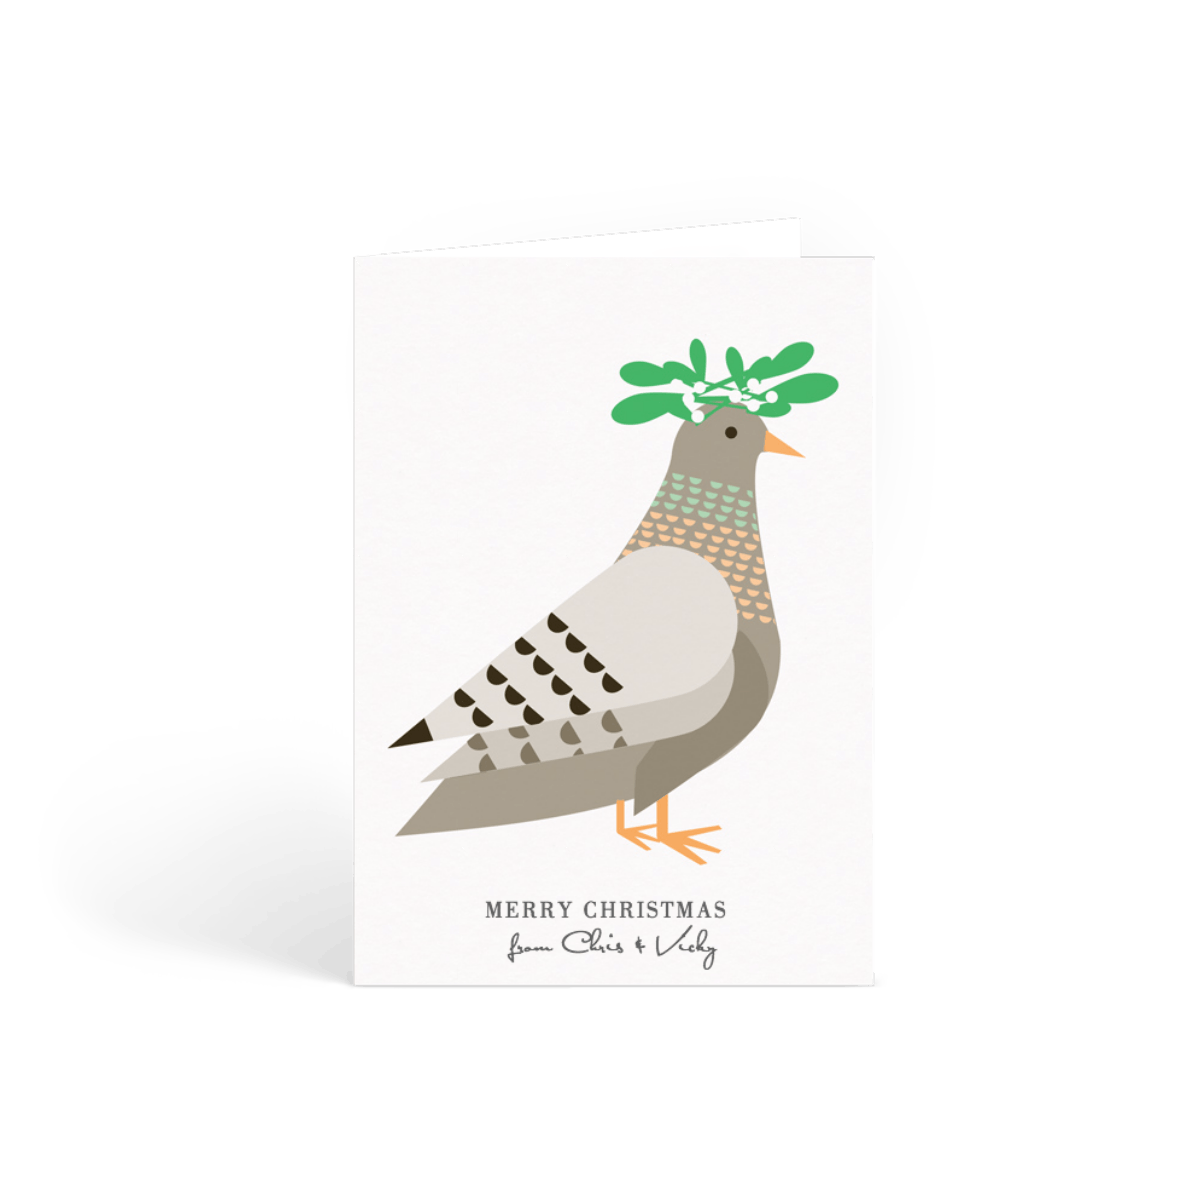 Https%3a%2f%2fwww.papier.com%2fproduct image%2f14315%2f2%2fmistletoe pigeon 3824 front 1501749147.png?ixlib=rb 1.1